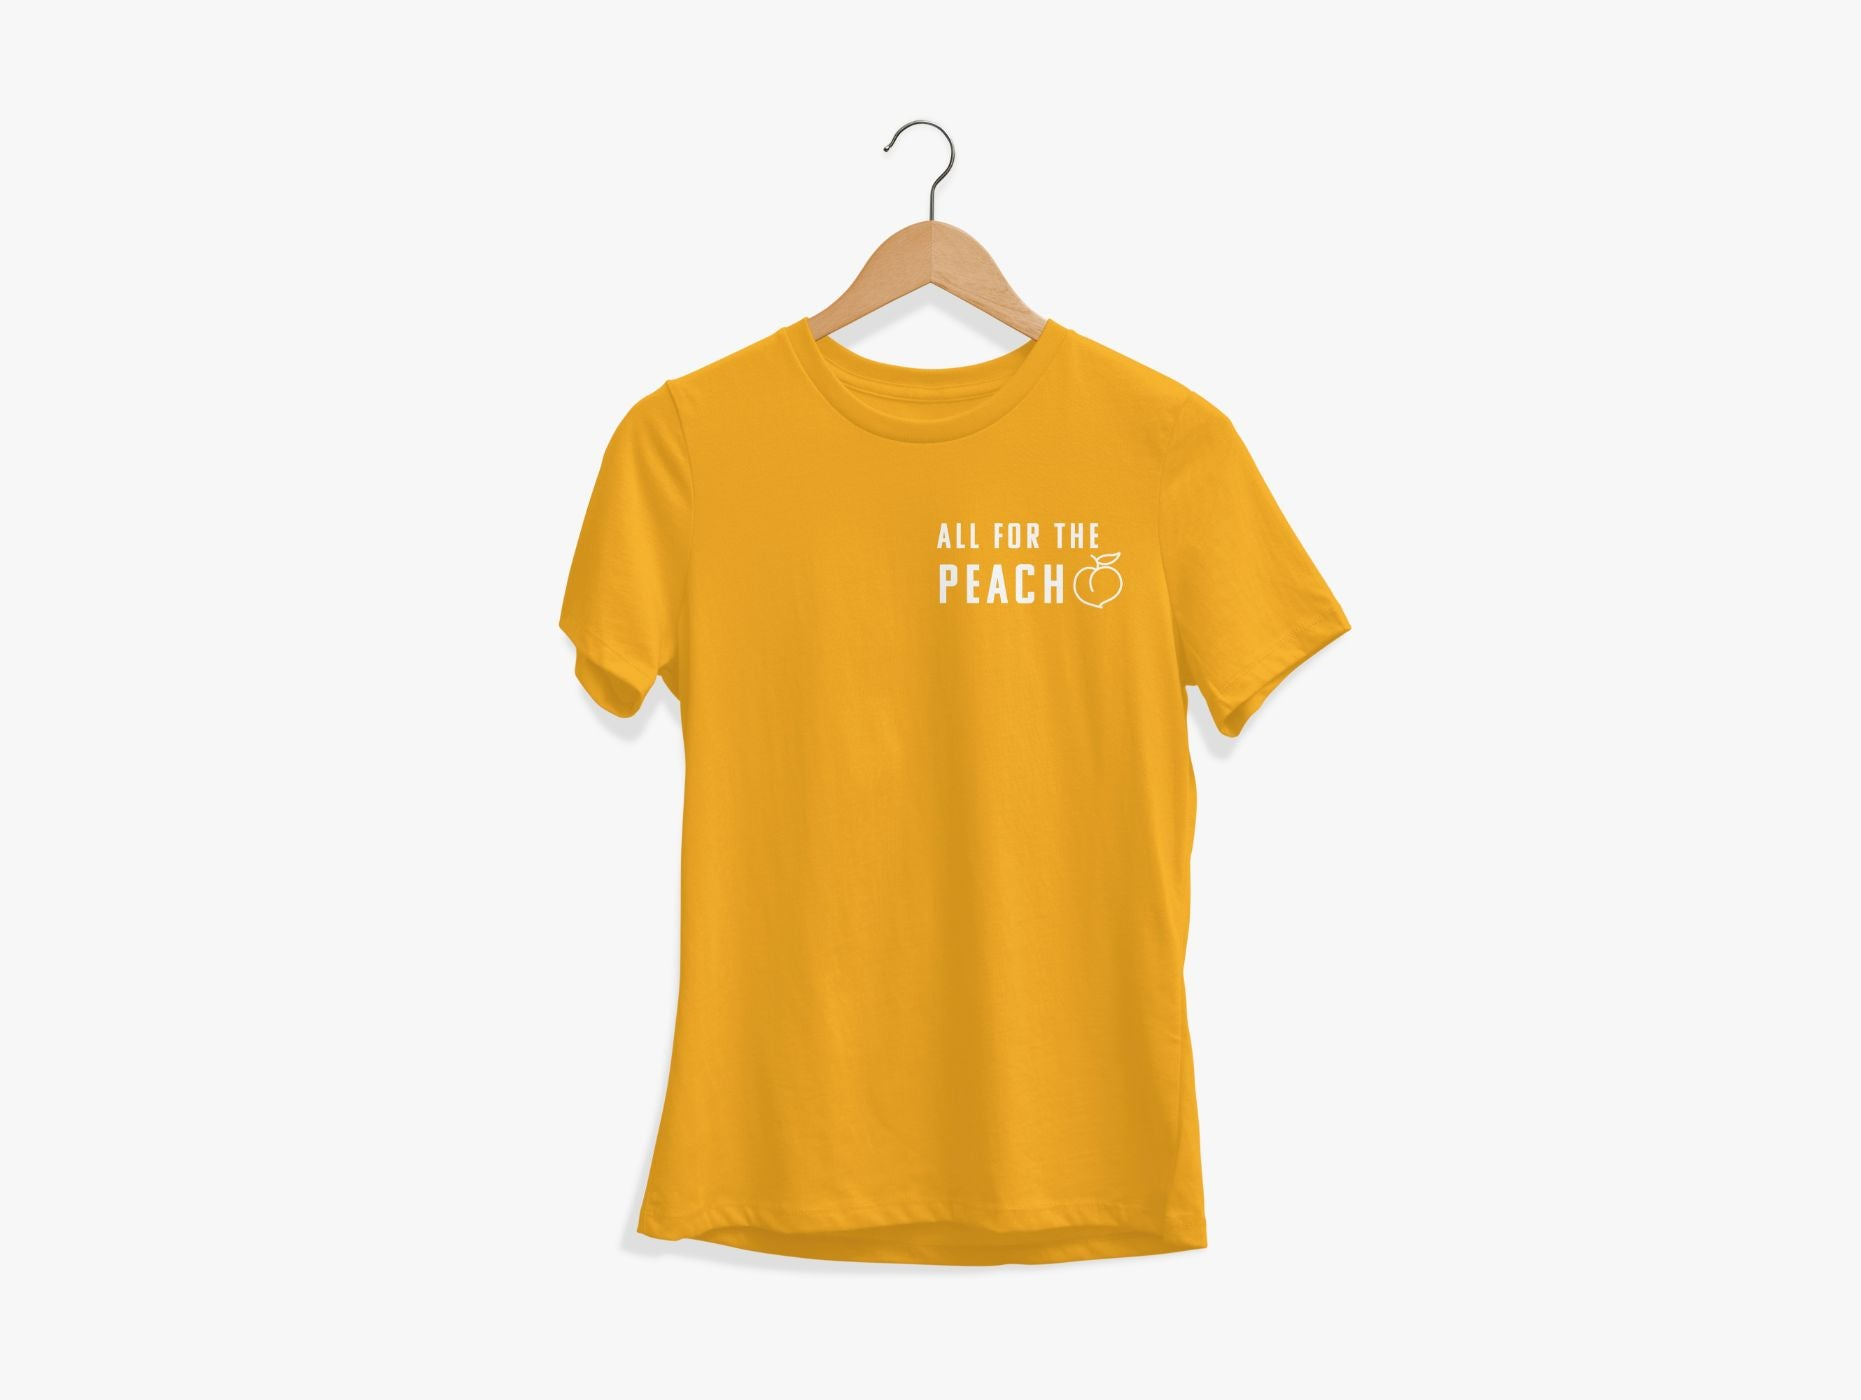 All For The Peach T-Shirt